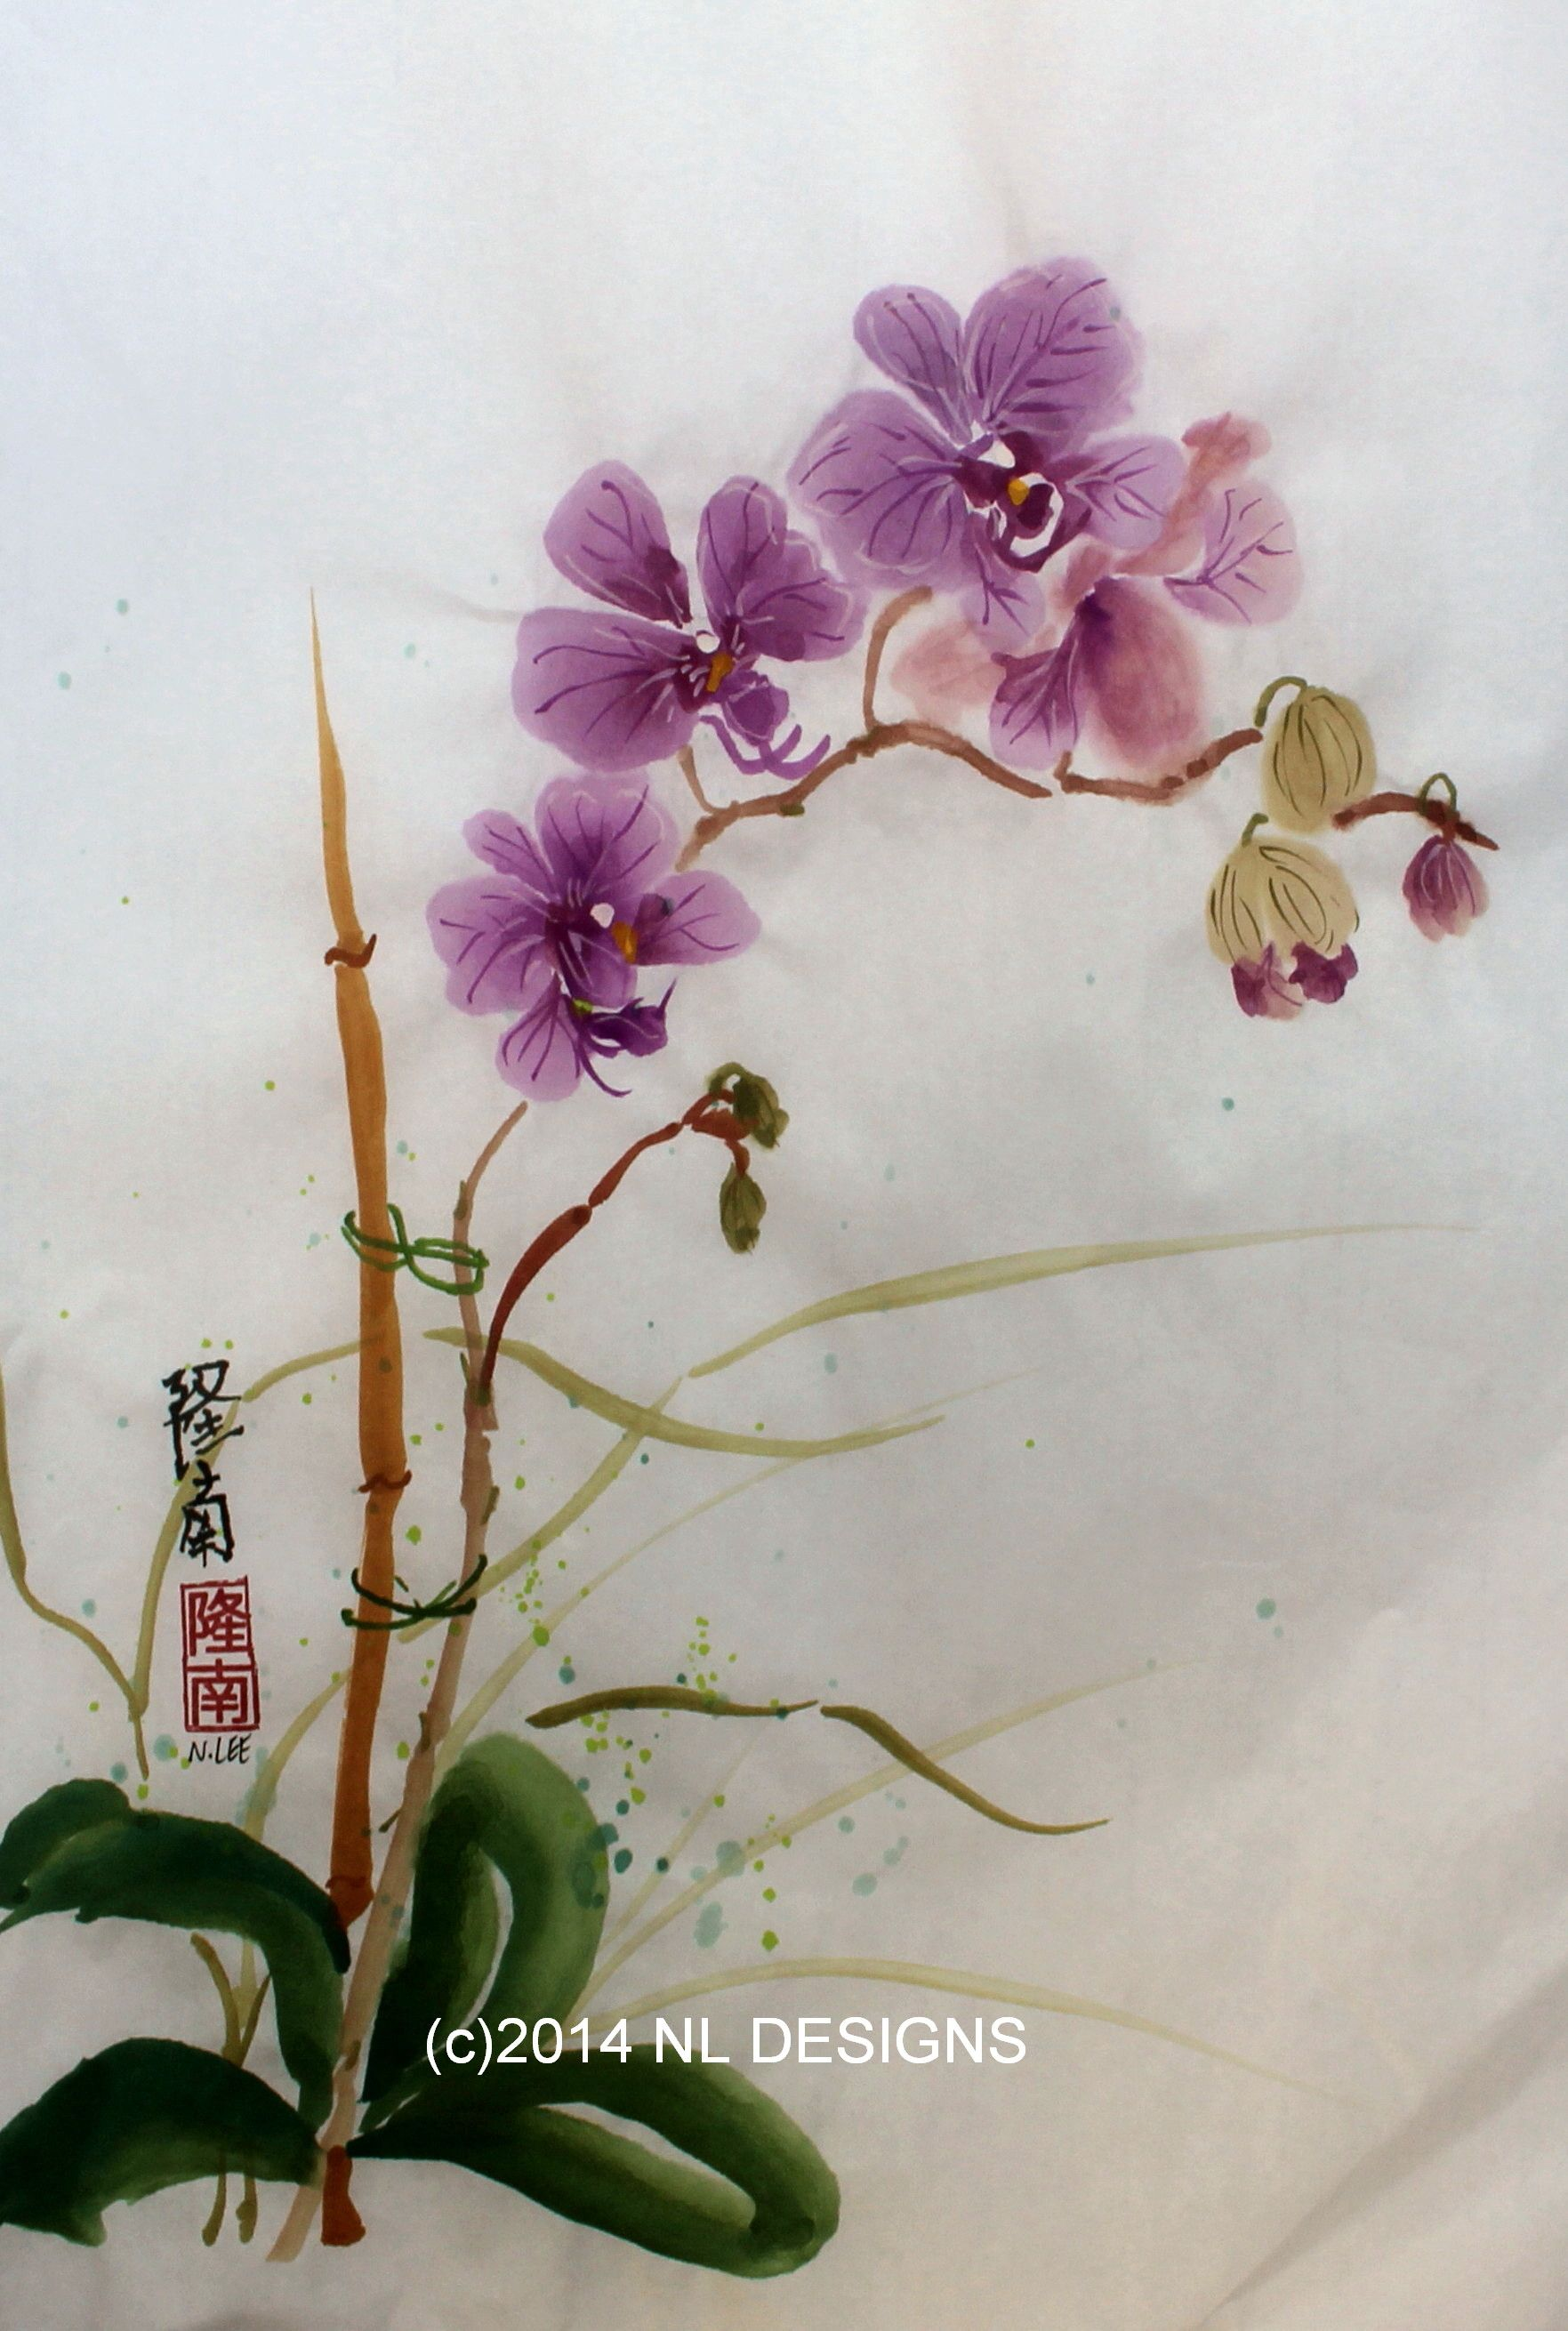 Orchid Flowers On A Bamboo Stake Painting Nldesignsbythesea Orchids Painting Flower Painting Watercolor Flowers Paintings